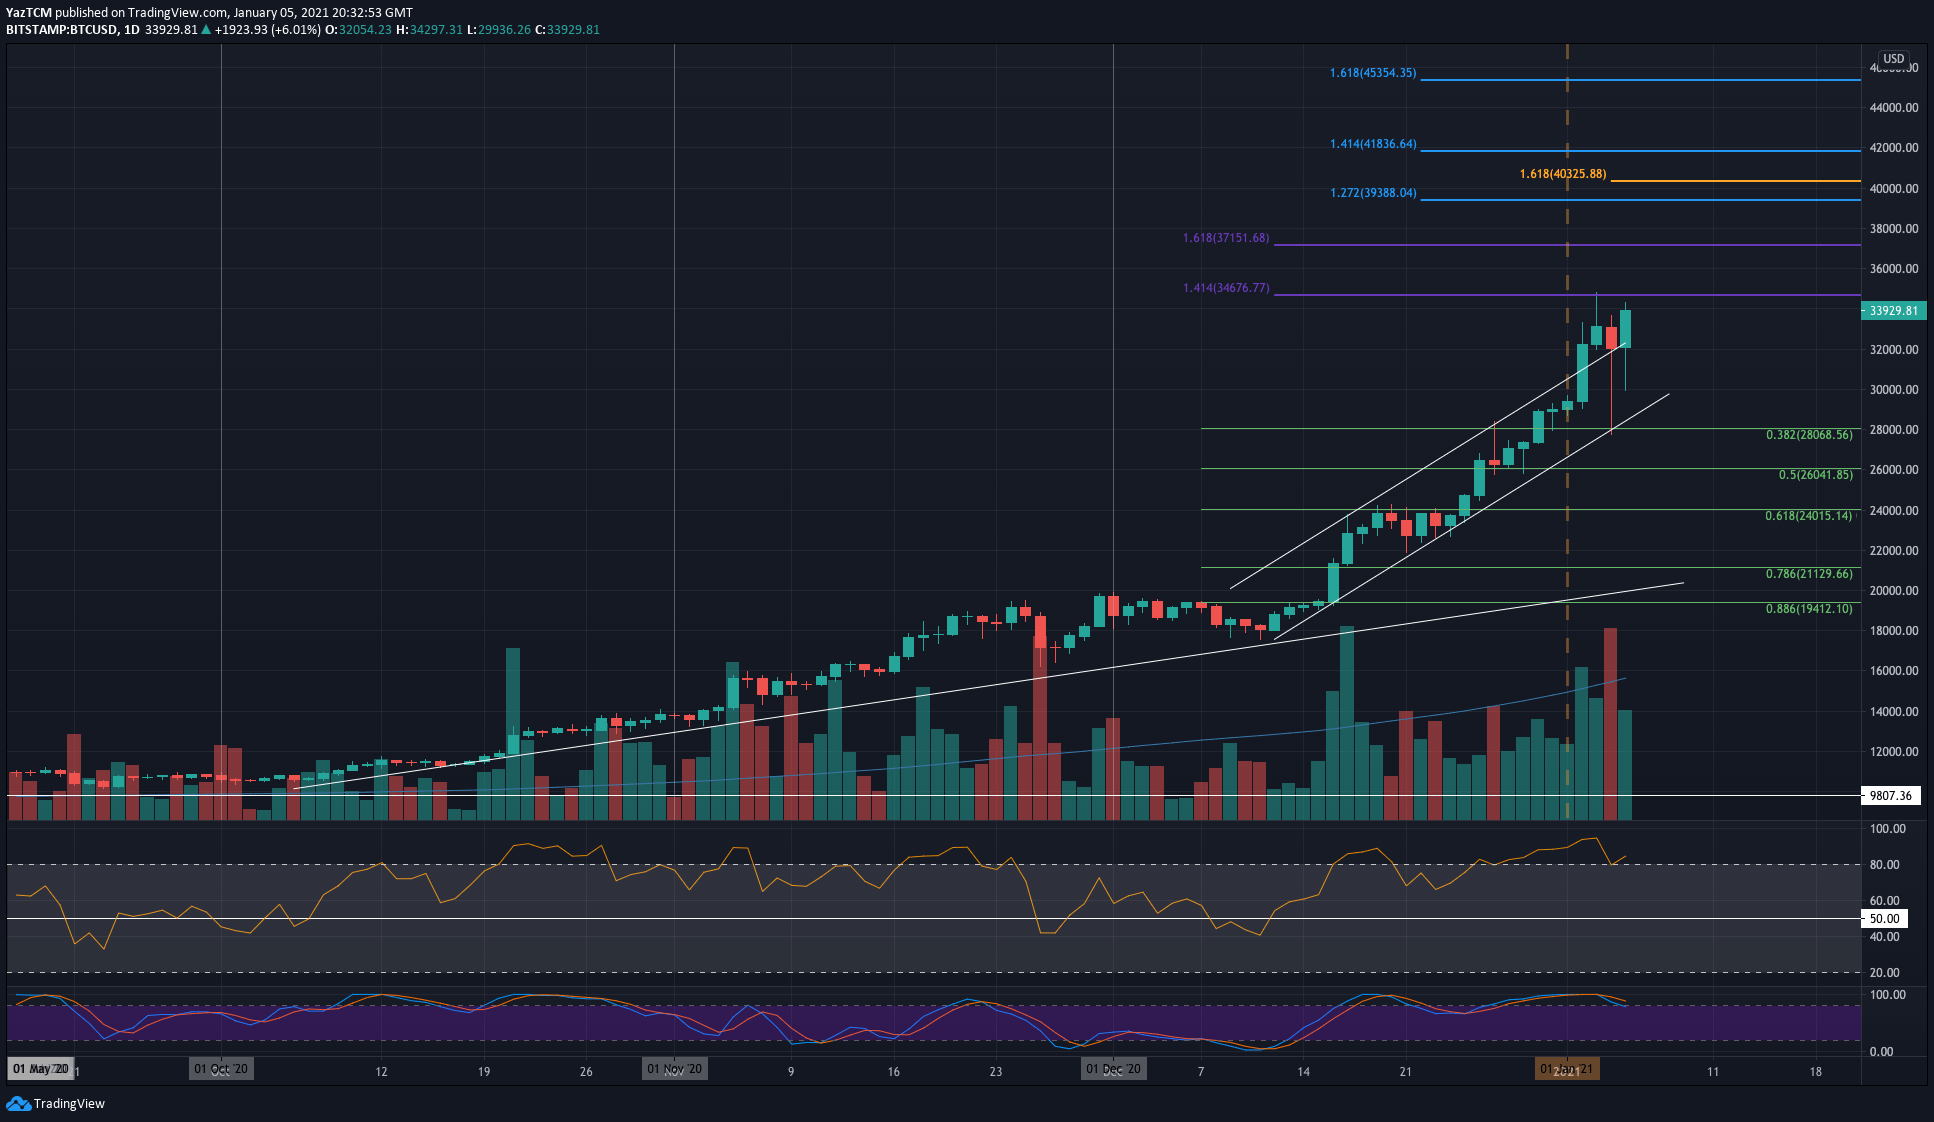 Bitcoin Skyrockets $2000 Surpassing $34K: New ATH Soon? (BTC Price Analysis)